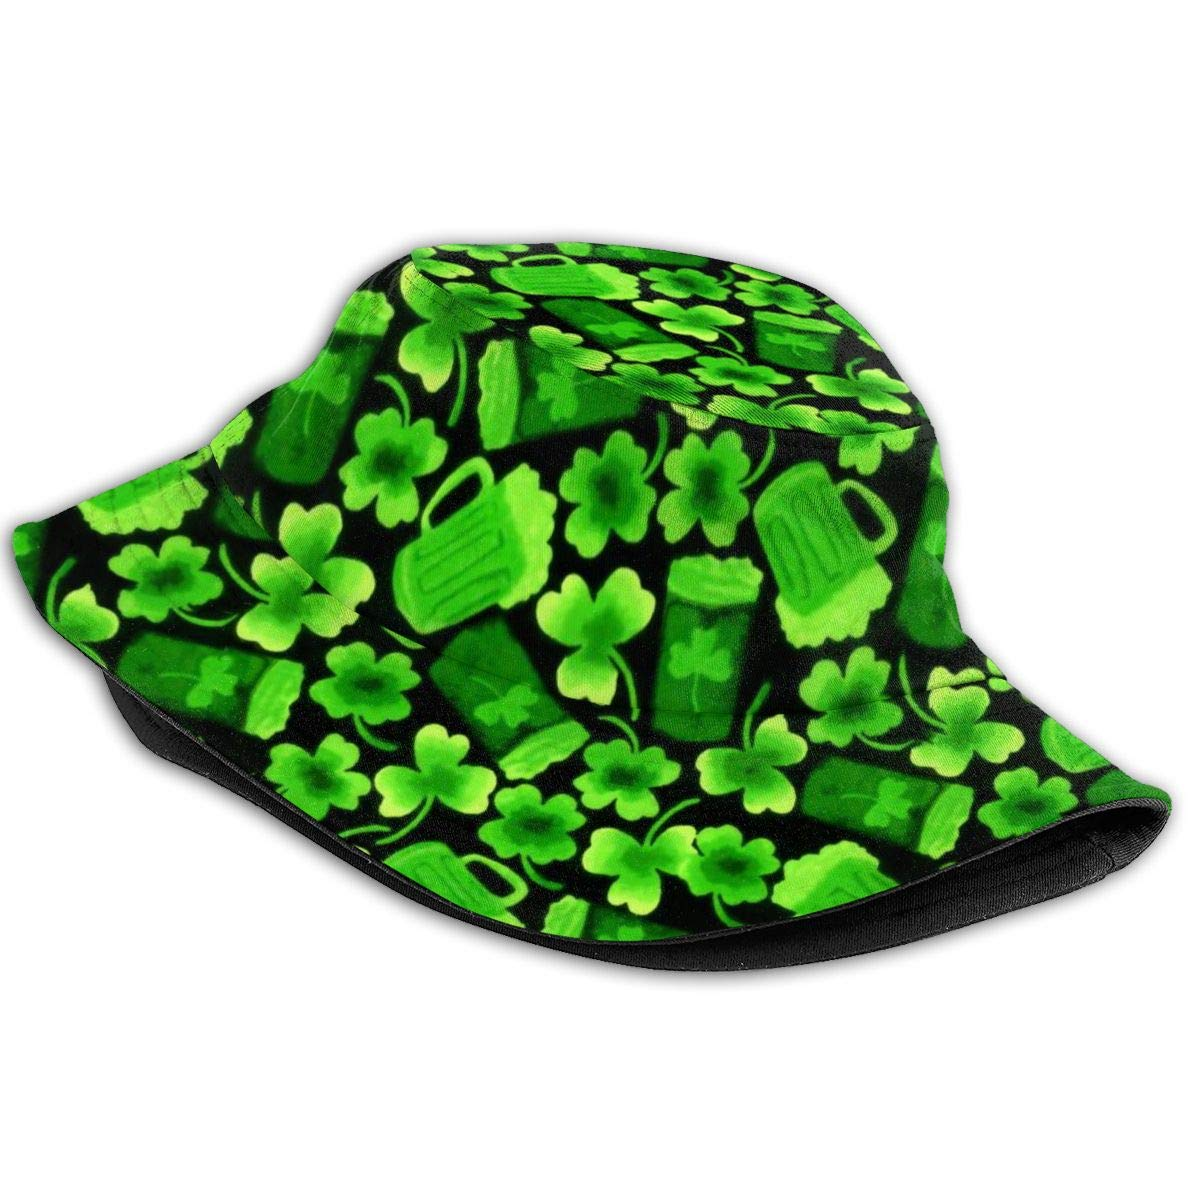 Cool Trucker Mesh Cap for Unisex Mens and Womens 100/% Polyester Luc ST Patrick Shamrock Beer Baseball Cap